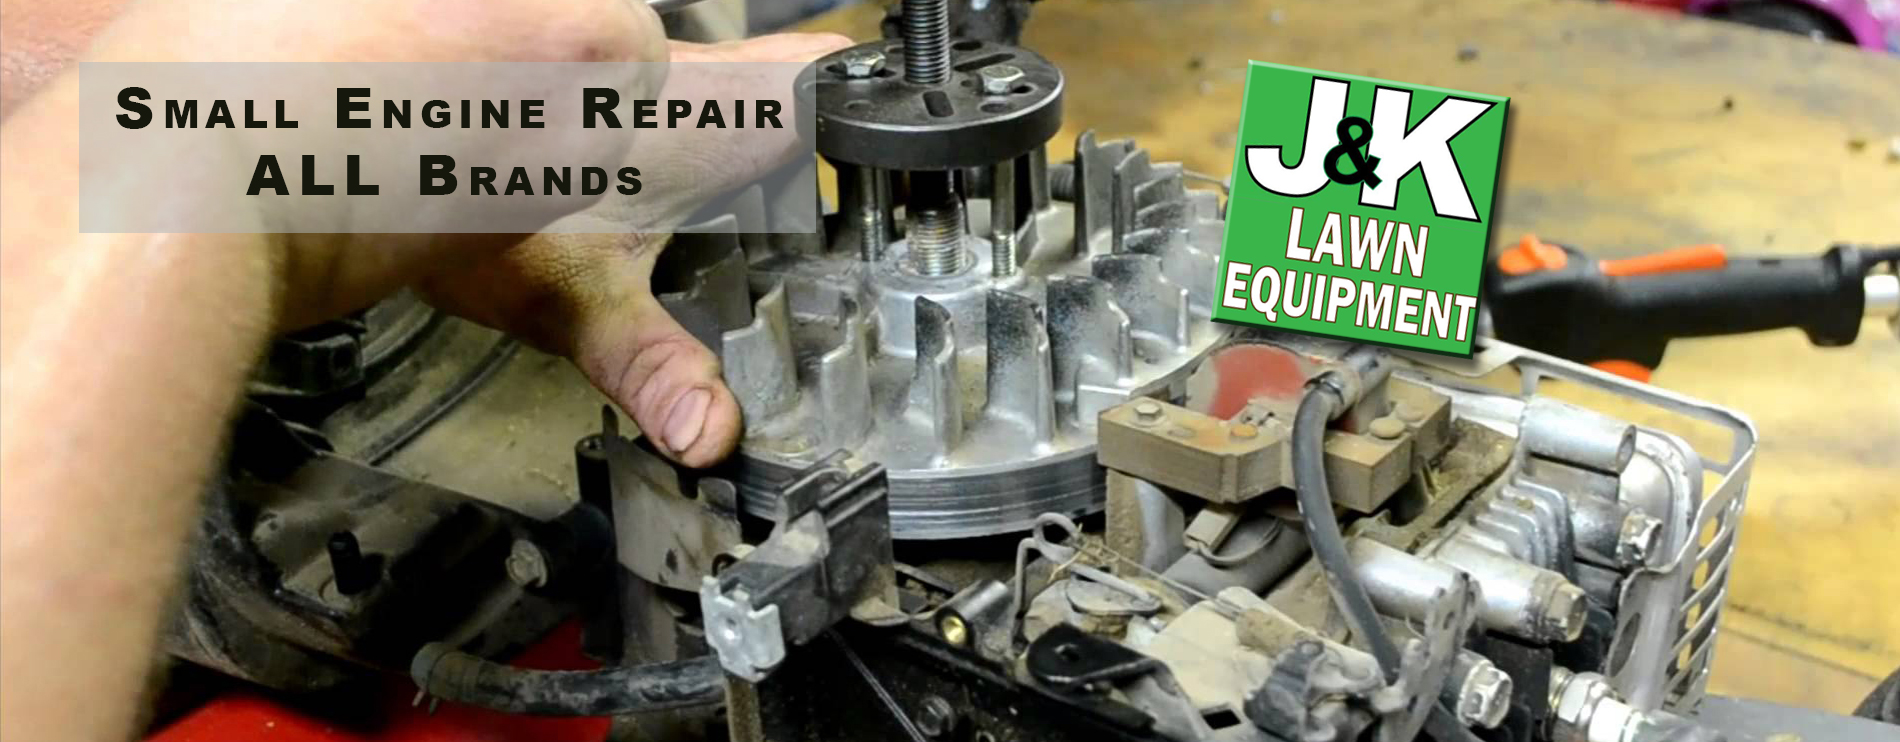 Small Engine Repair, J and K Lawn Equipment